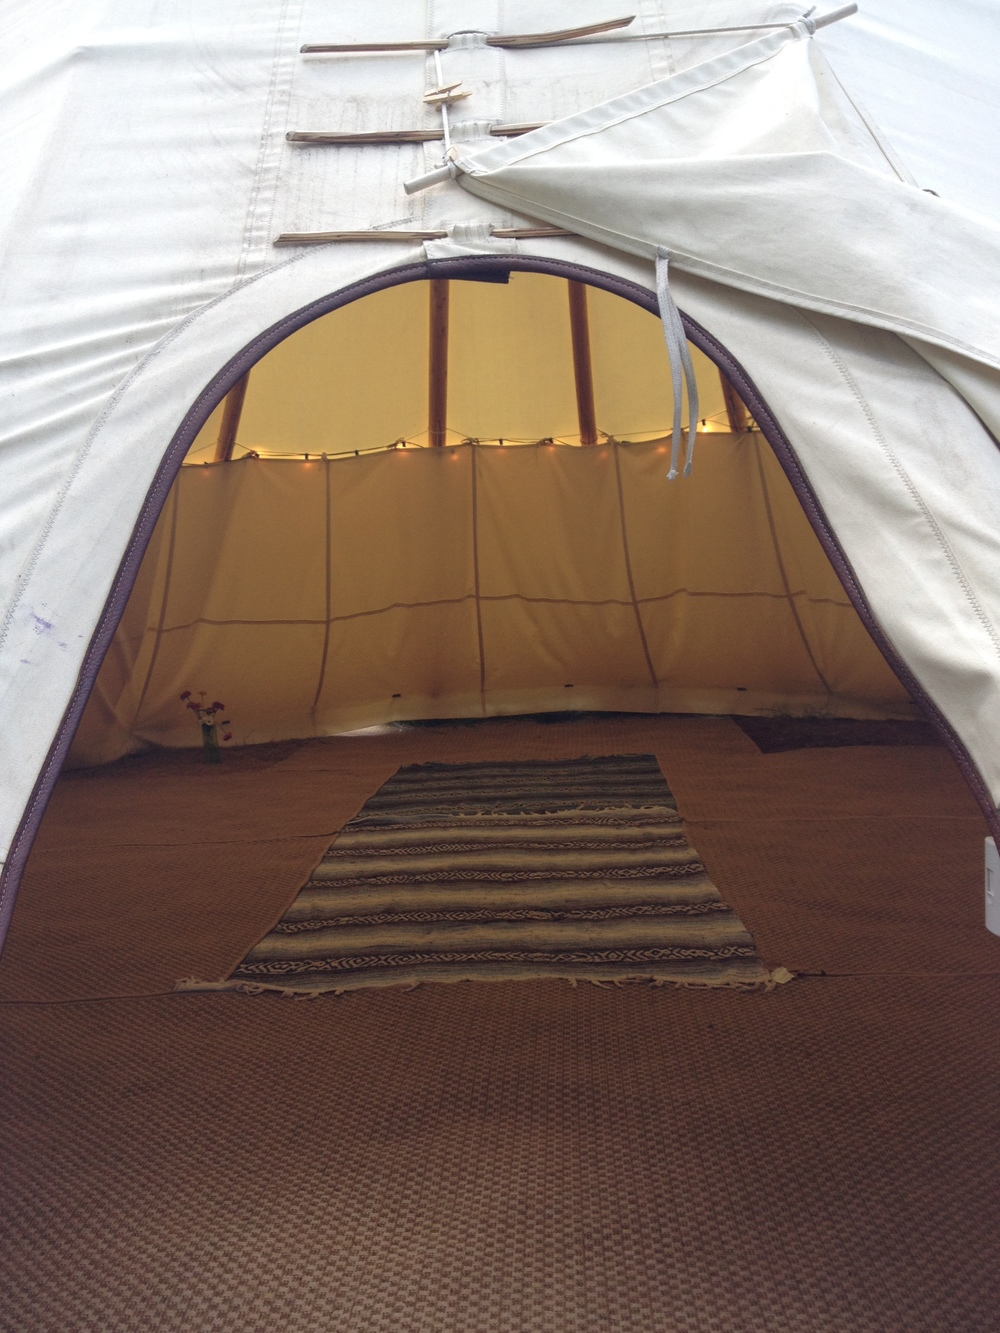 My moon circle this month, lead by Meredith Edwards, was in The Tipi Project in Williamsburg.